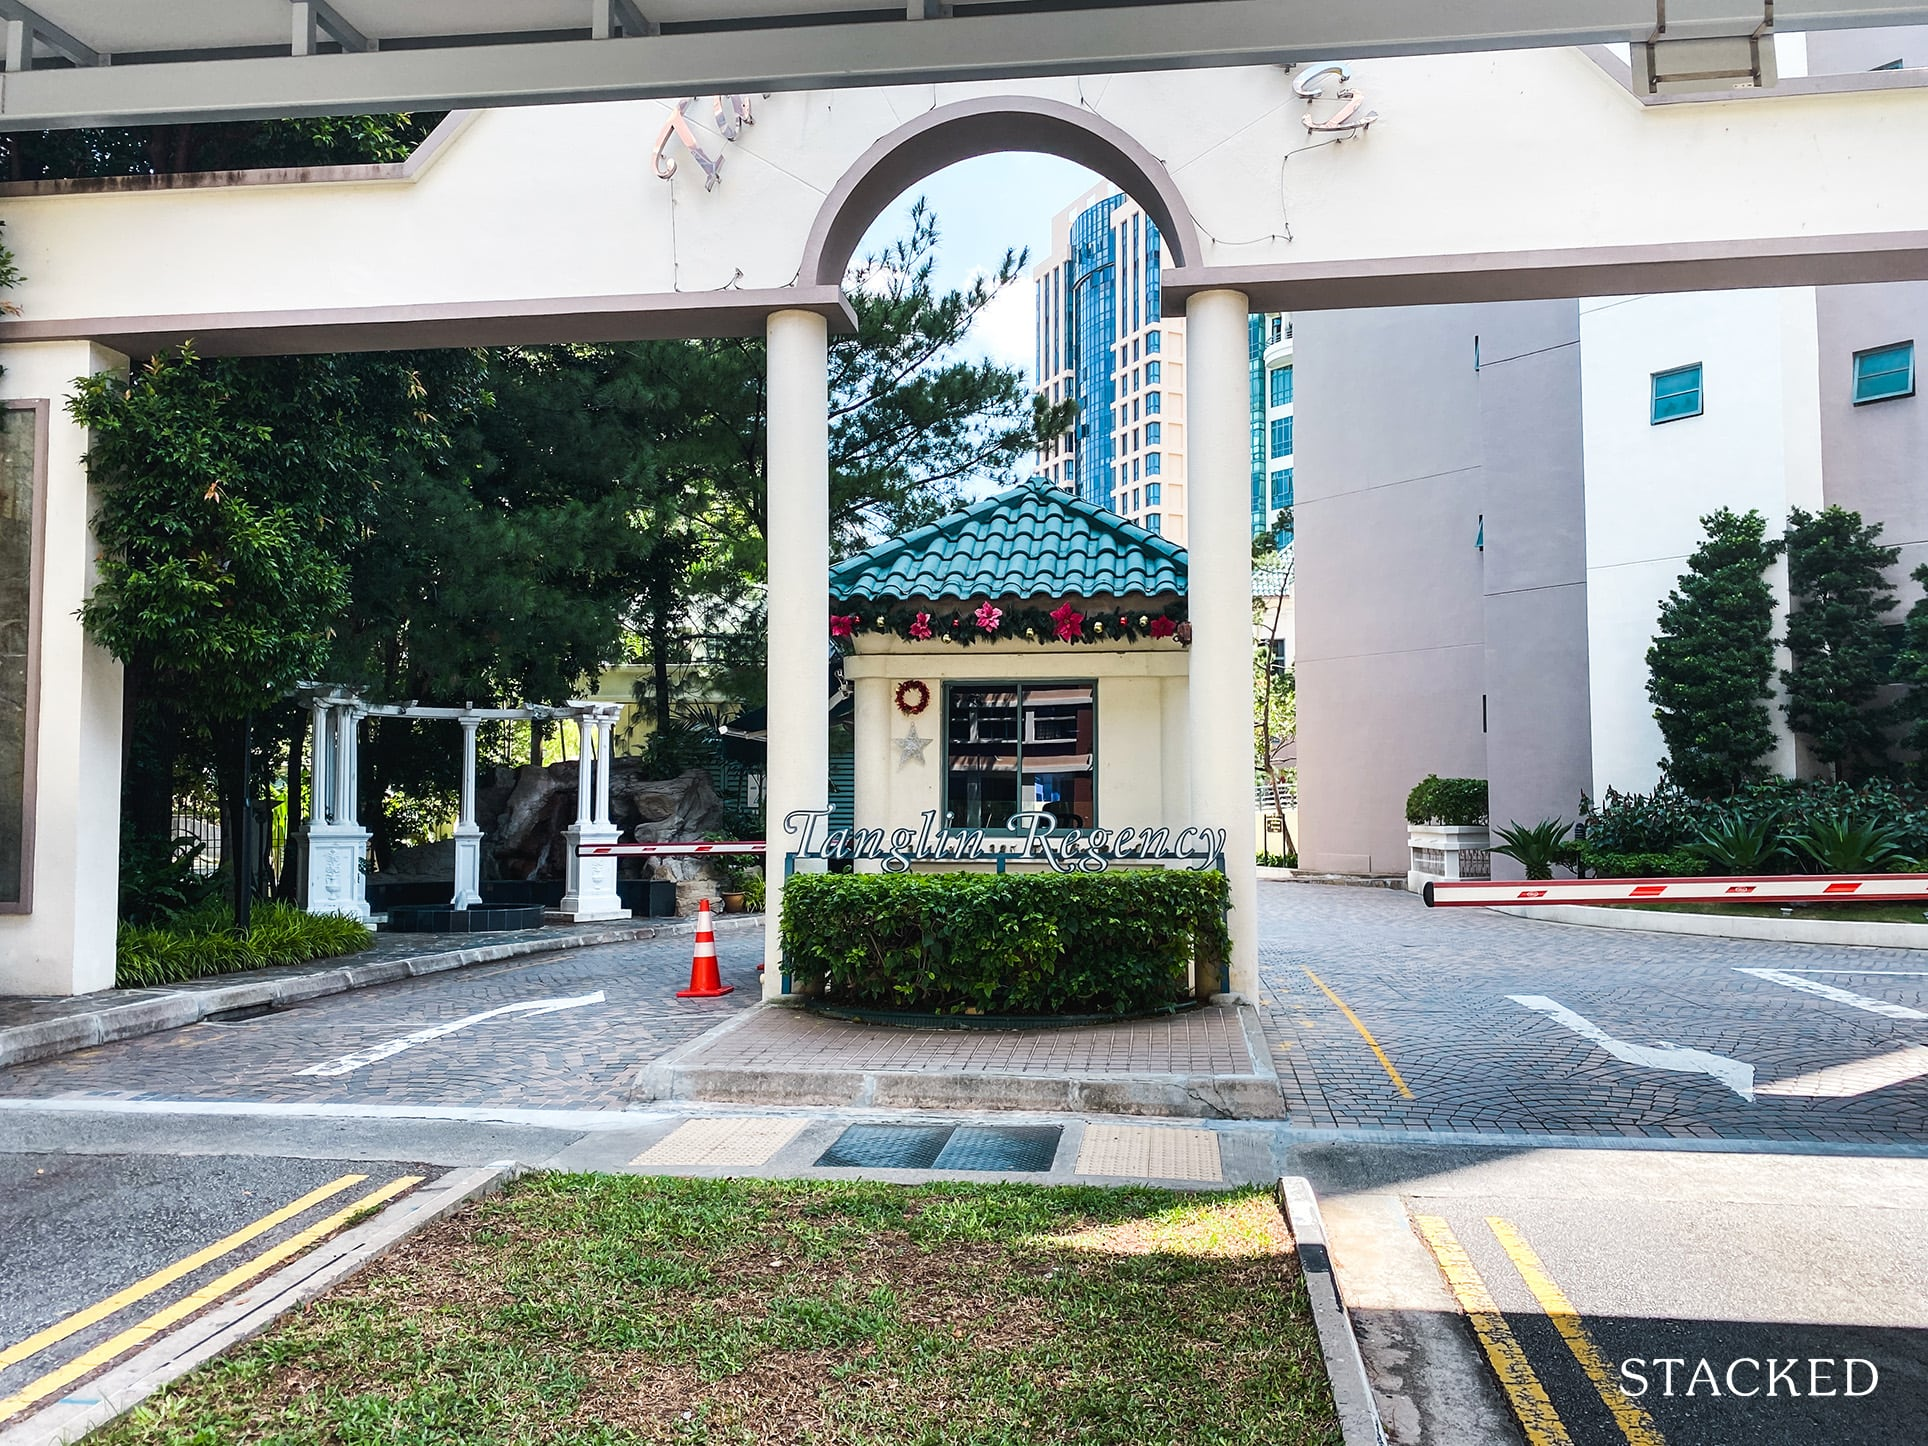 Tanglin Regency entrance